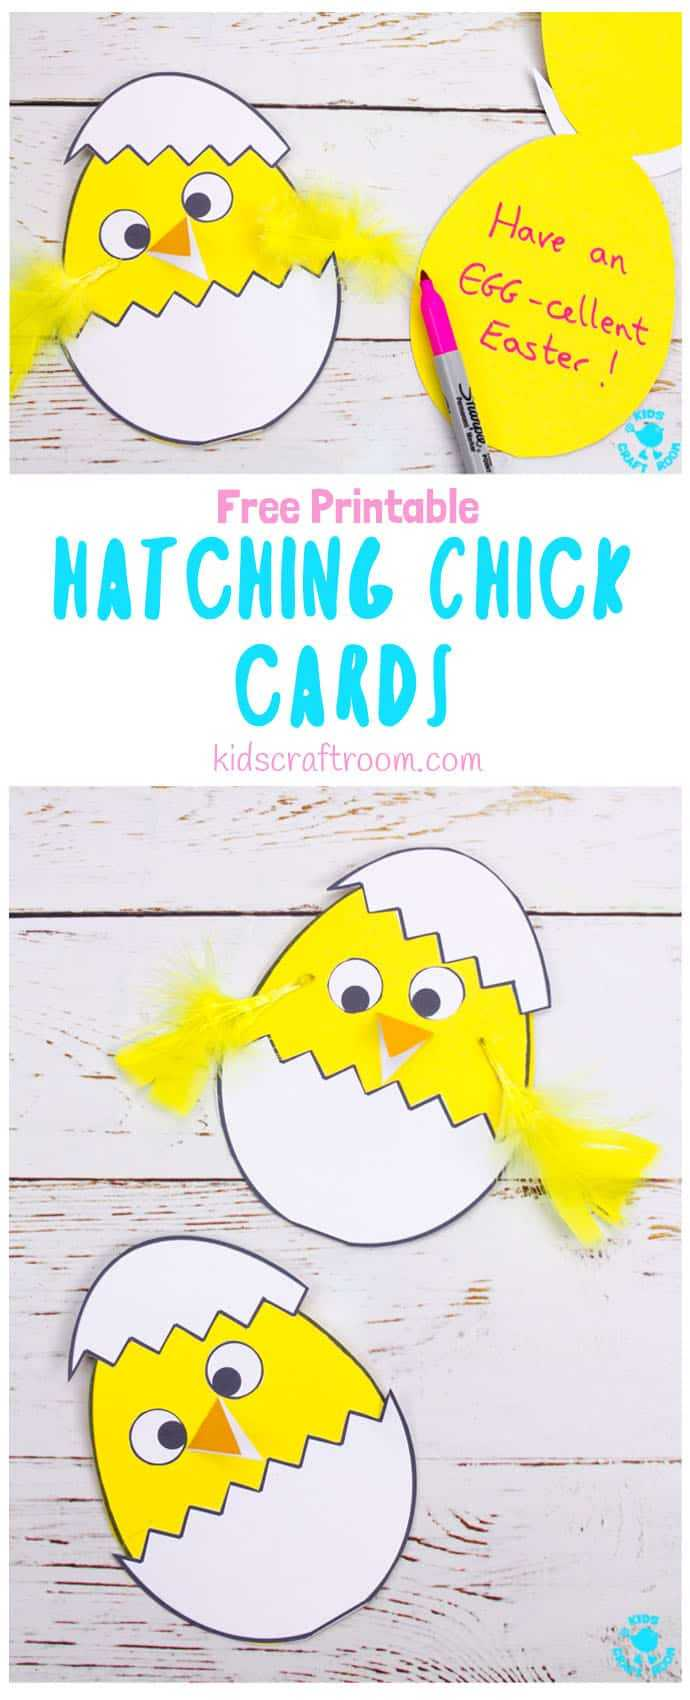 Hatching Chick Easter Card Craft - Kids Craft Room Pertaining To Easter Chick Card Template